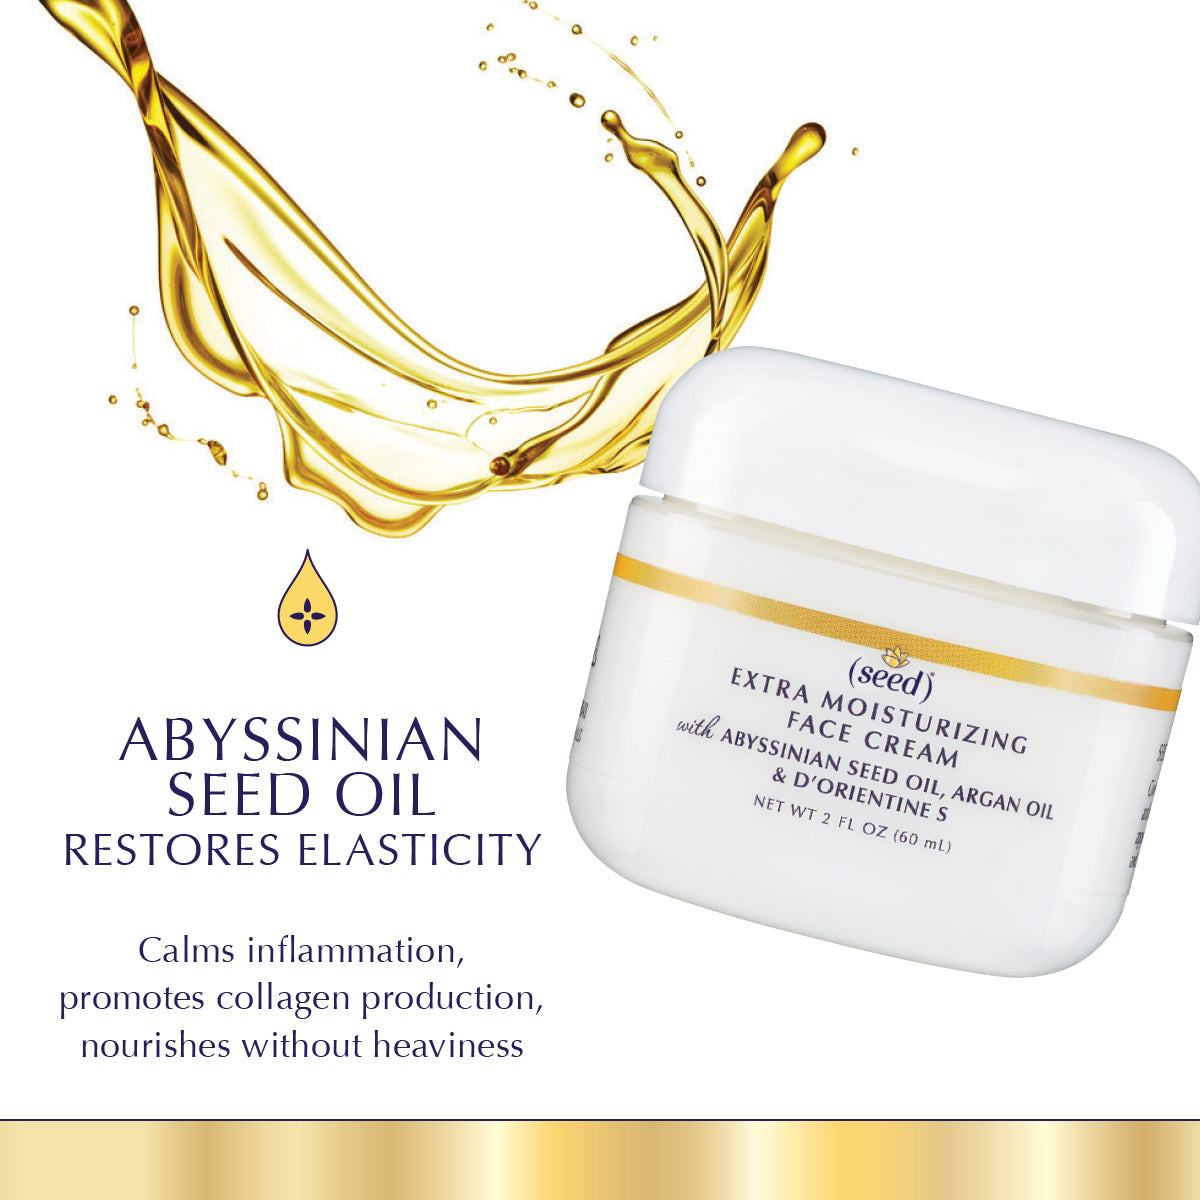 Seed Advanced Botanicals Extra Moisturizing Face Cream features Abyssinian Seed Oil